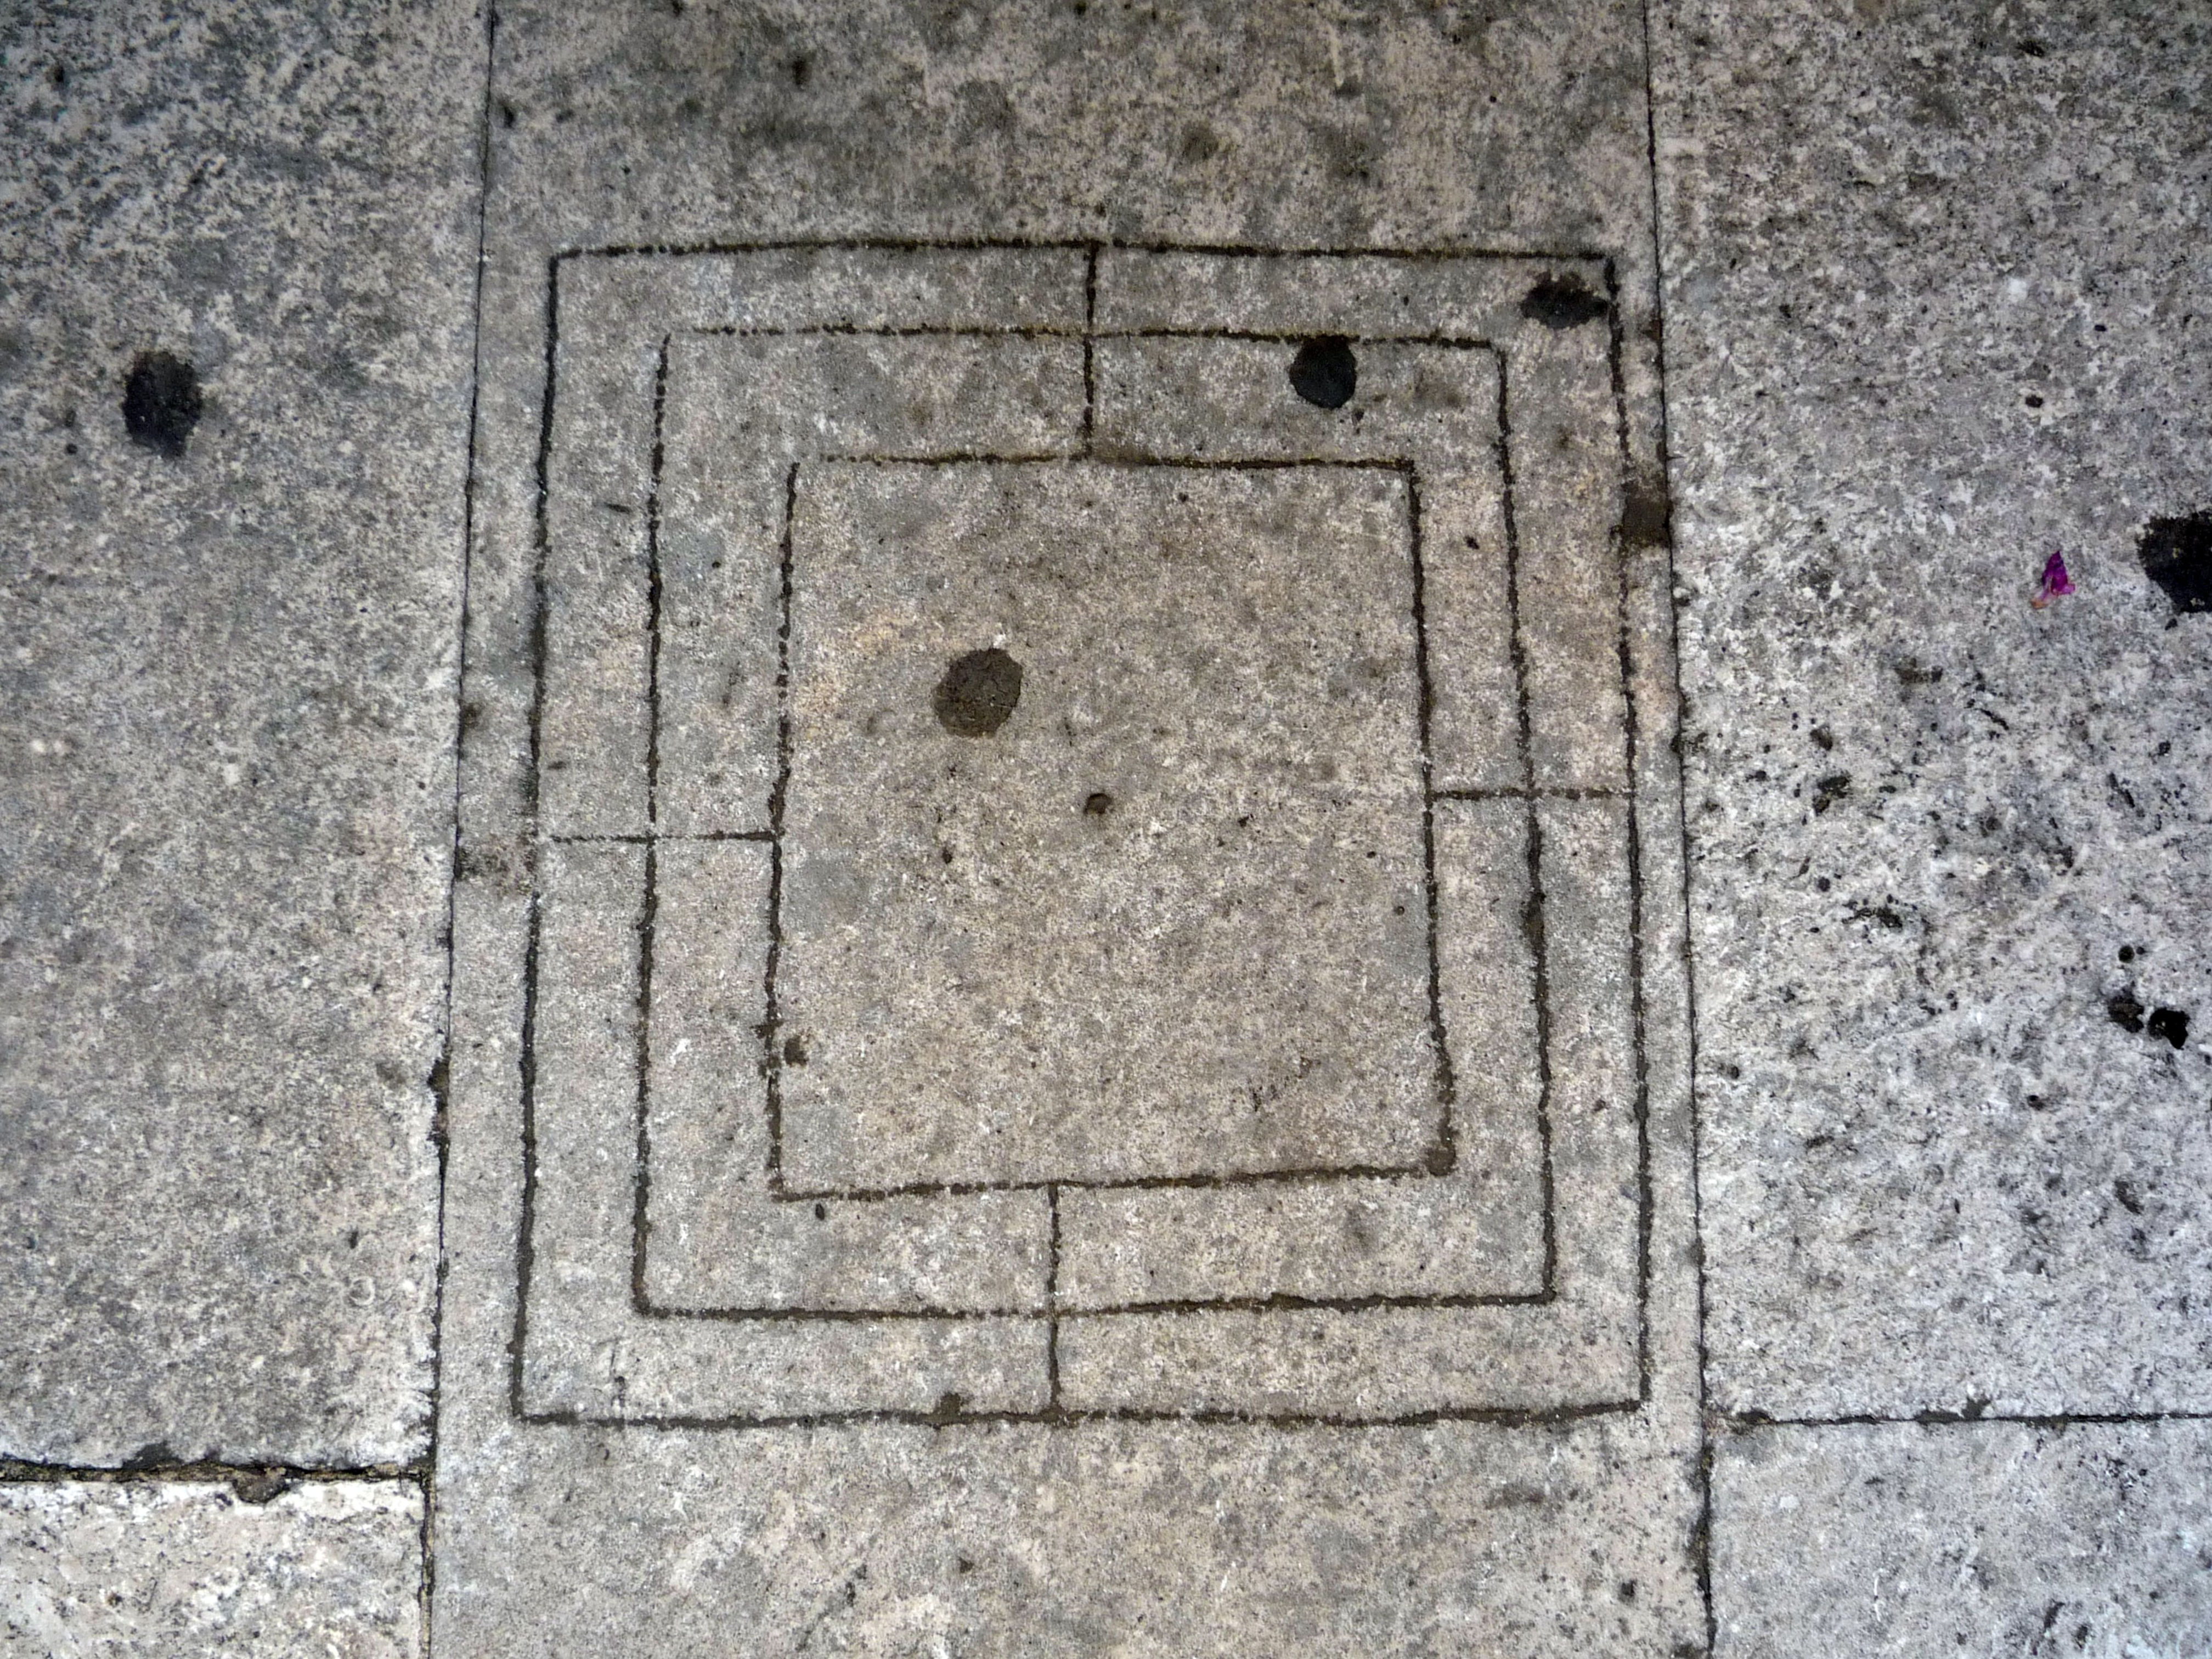 Nine Men's Morris, carved on the floor of the platform between the Bell Tower and the Dome of Diocletian's Mausoleum in Split, Croatia. Photo: June 29, 2009 by Helen Goodchild.